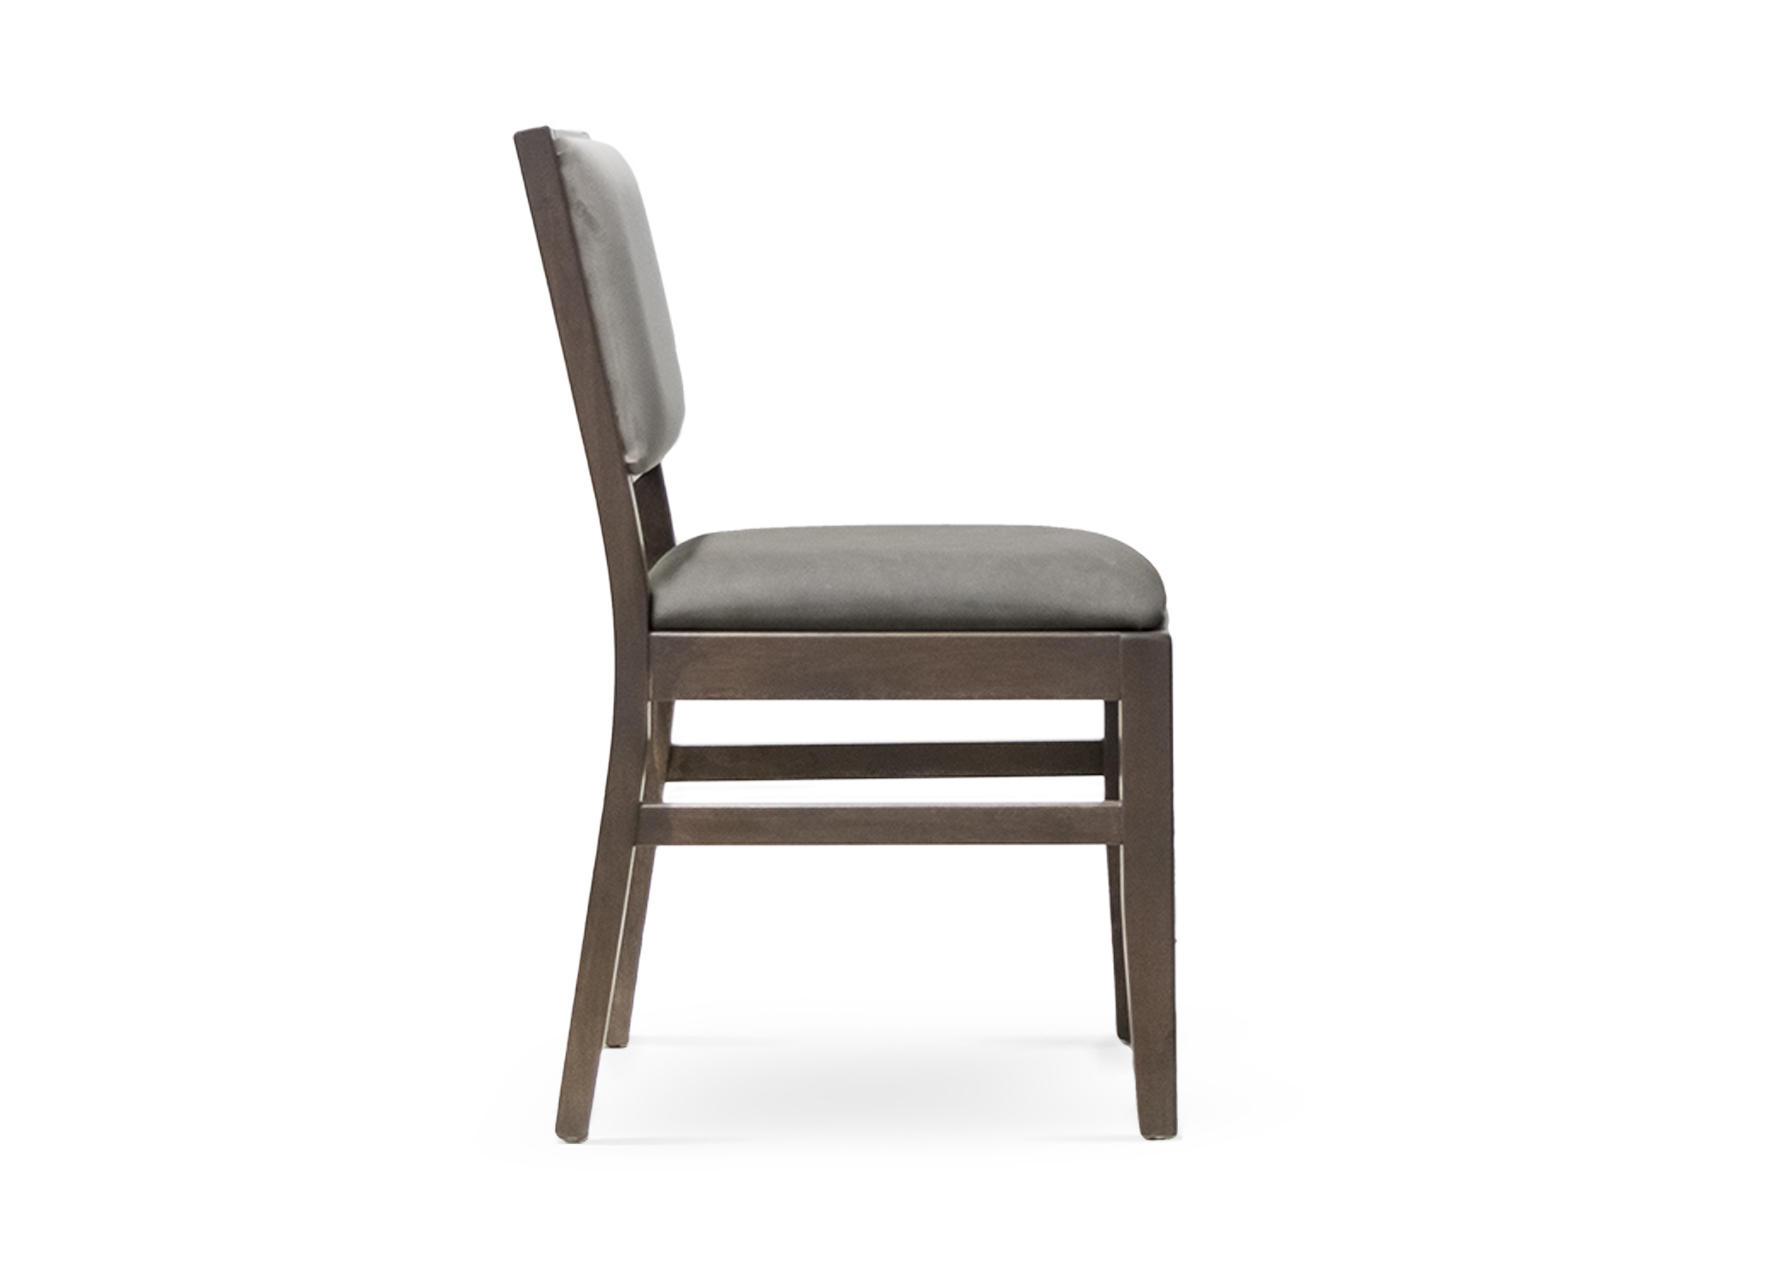 Anderson Padded Chair - S